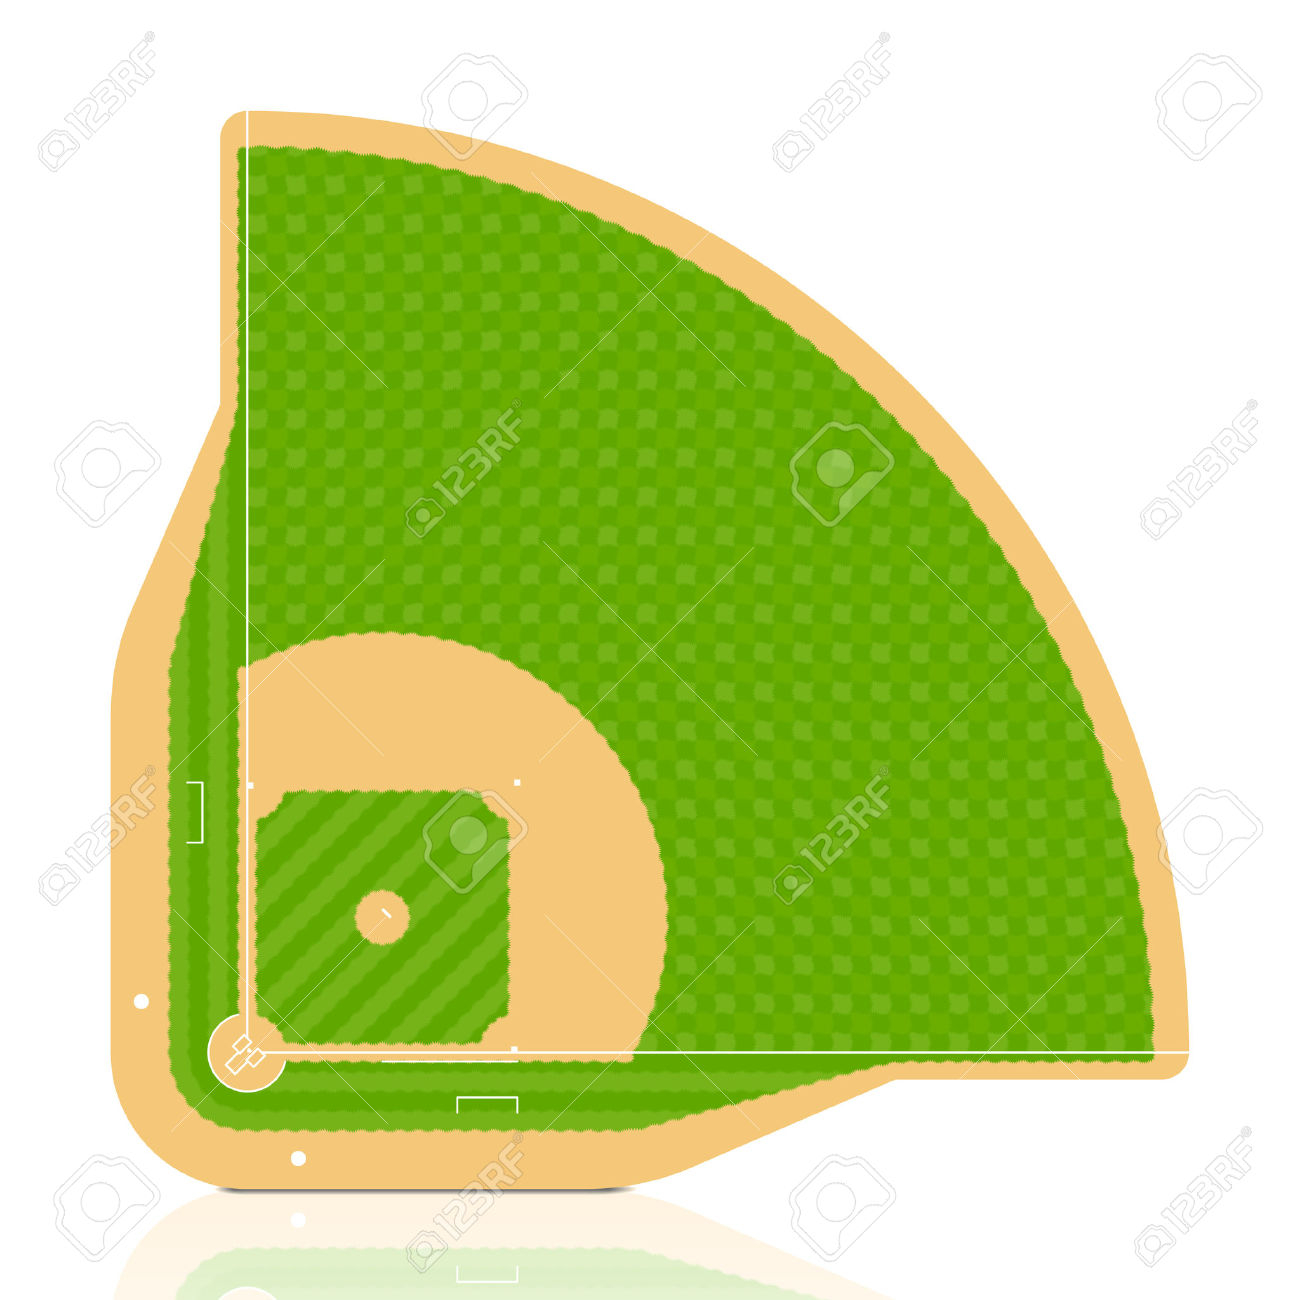 Baseball Field Diagram Baseball Diamond Diagram Clipart Free Download Best Baseball